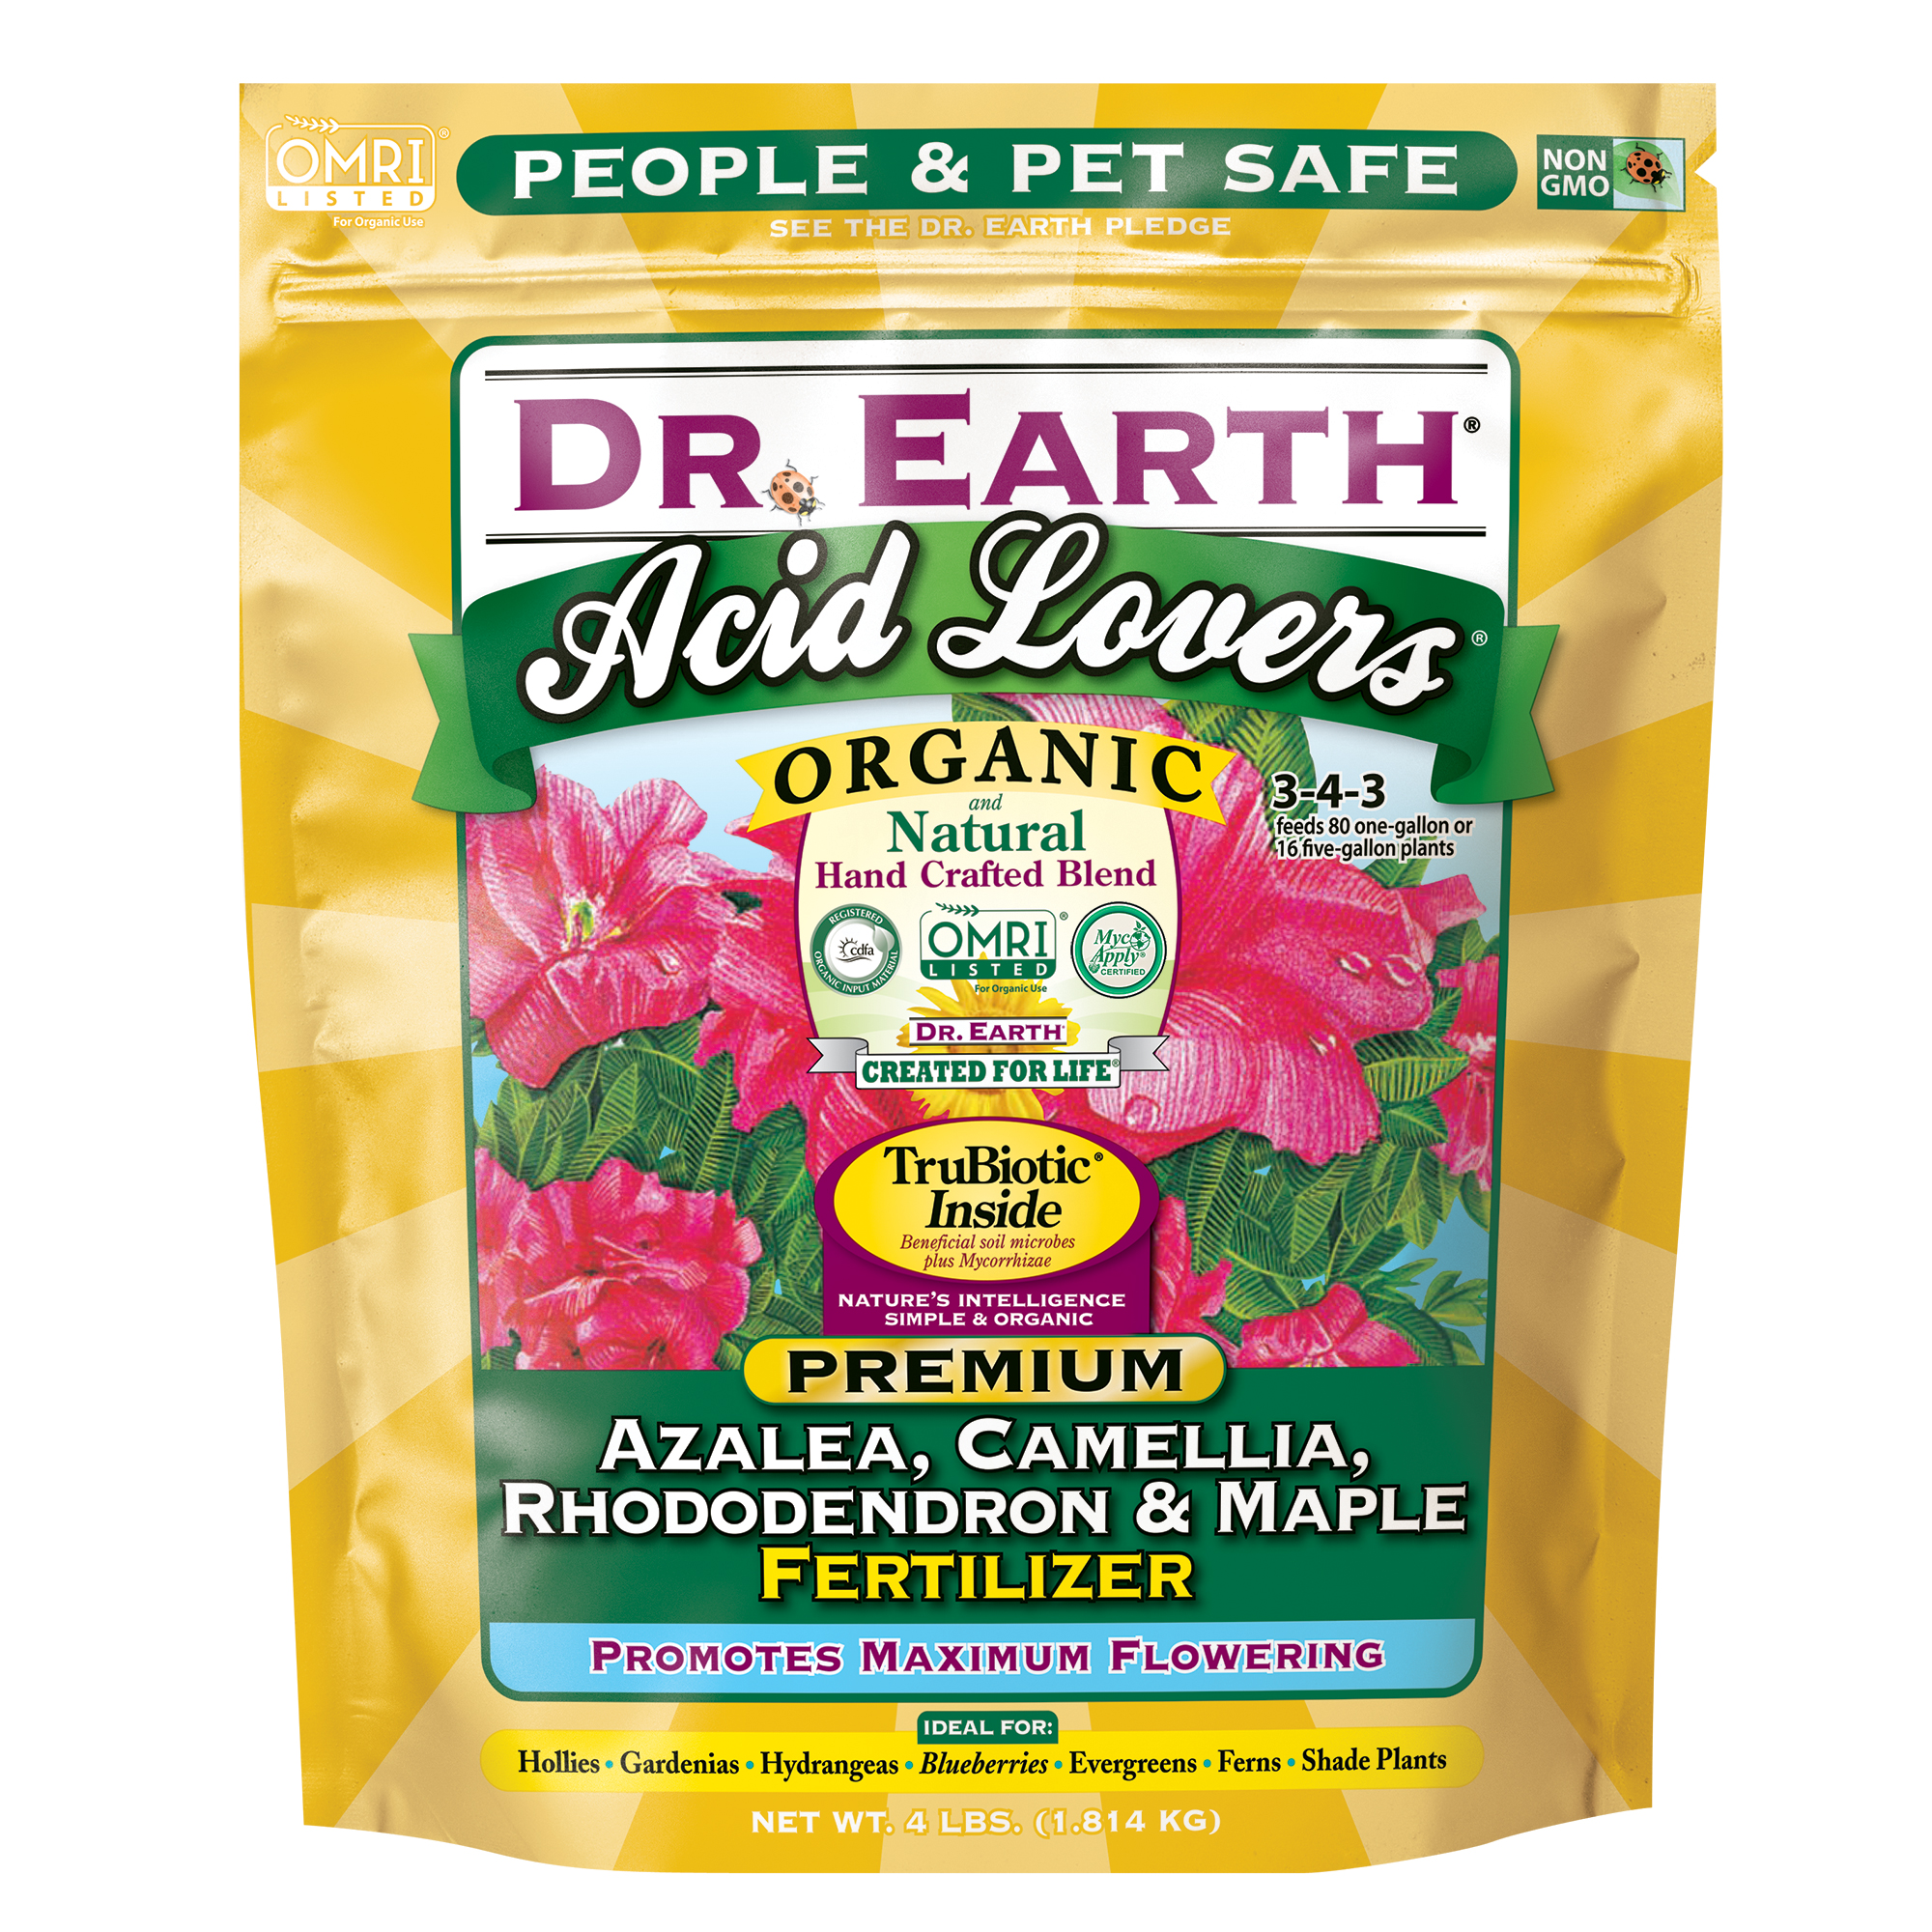 ACID LOVERS® AZALEA, CAMELLIA, RHODODENDRON & MAPLE FERTILIZER 4lb